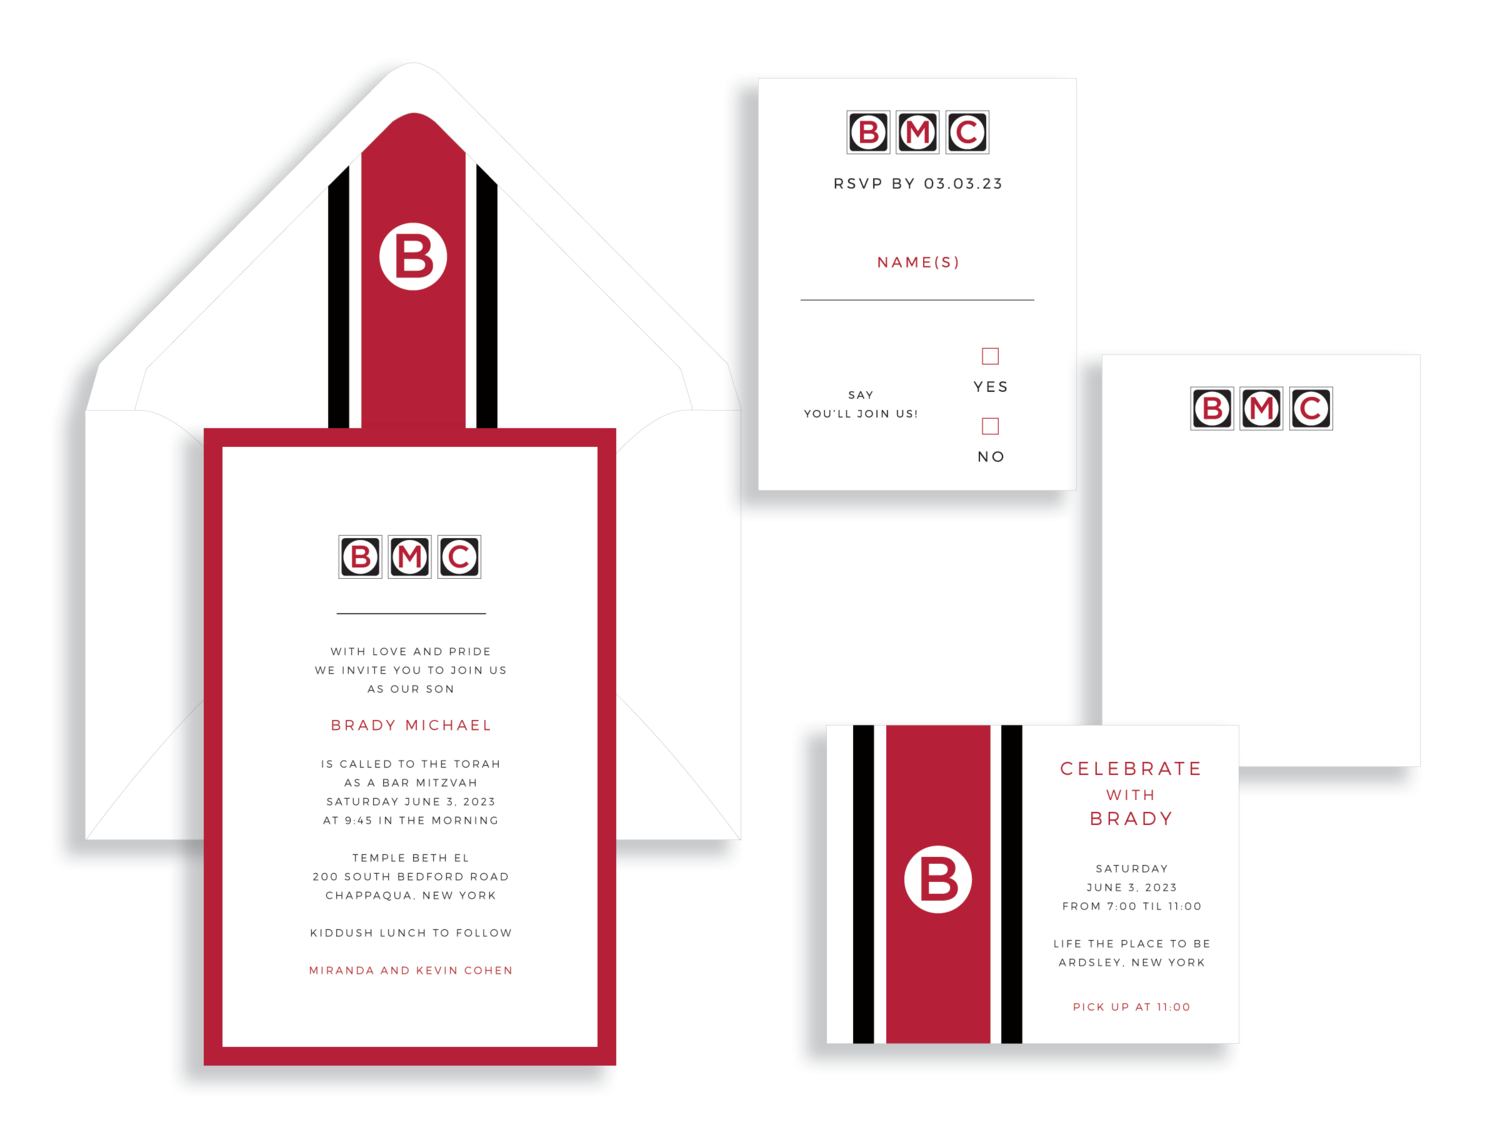 Brady bar mitzvah invitation available in the Washington DC Metro area from Staccato.